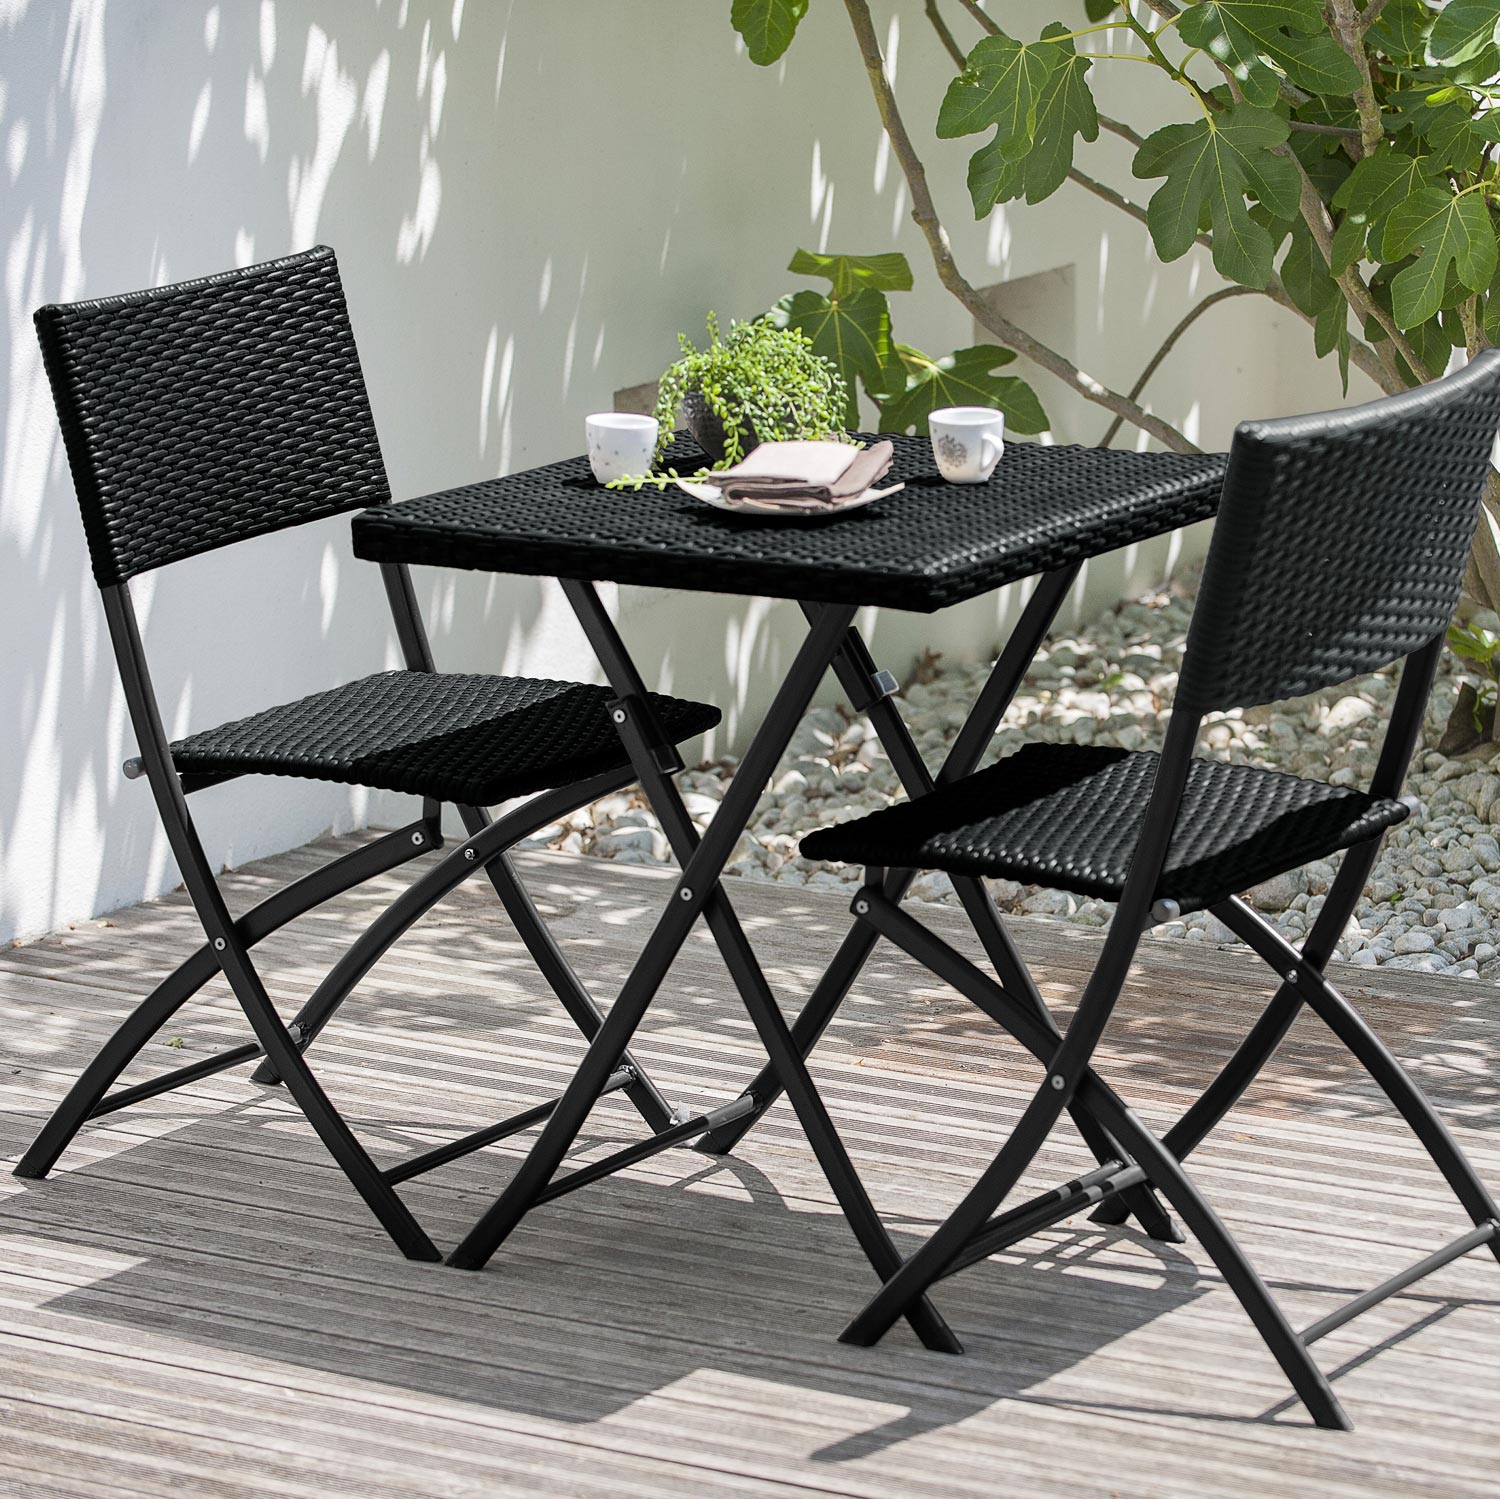 Salon de jardin alice set r sine tress e noir 1 table 2 chaises leroy merlin - Embout pied de chaise leroy merlin ...